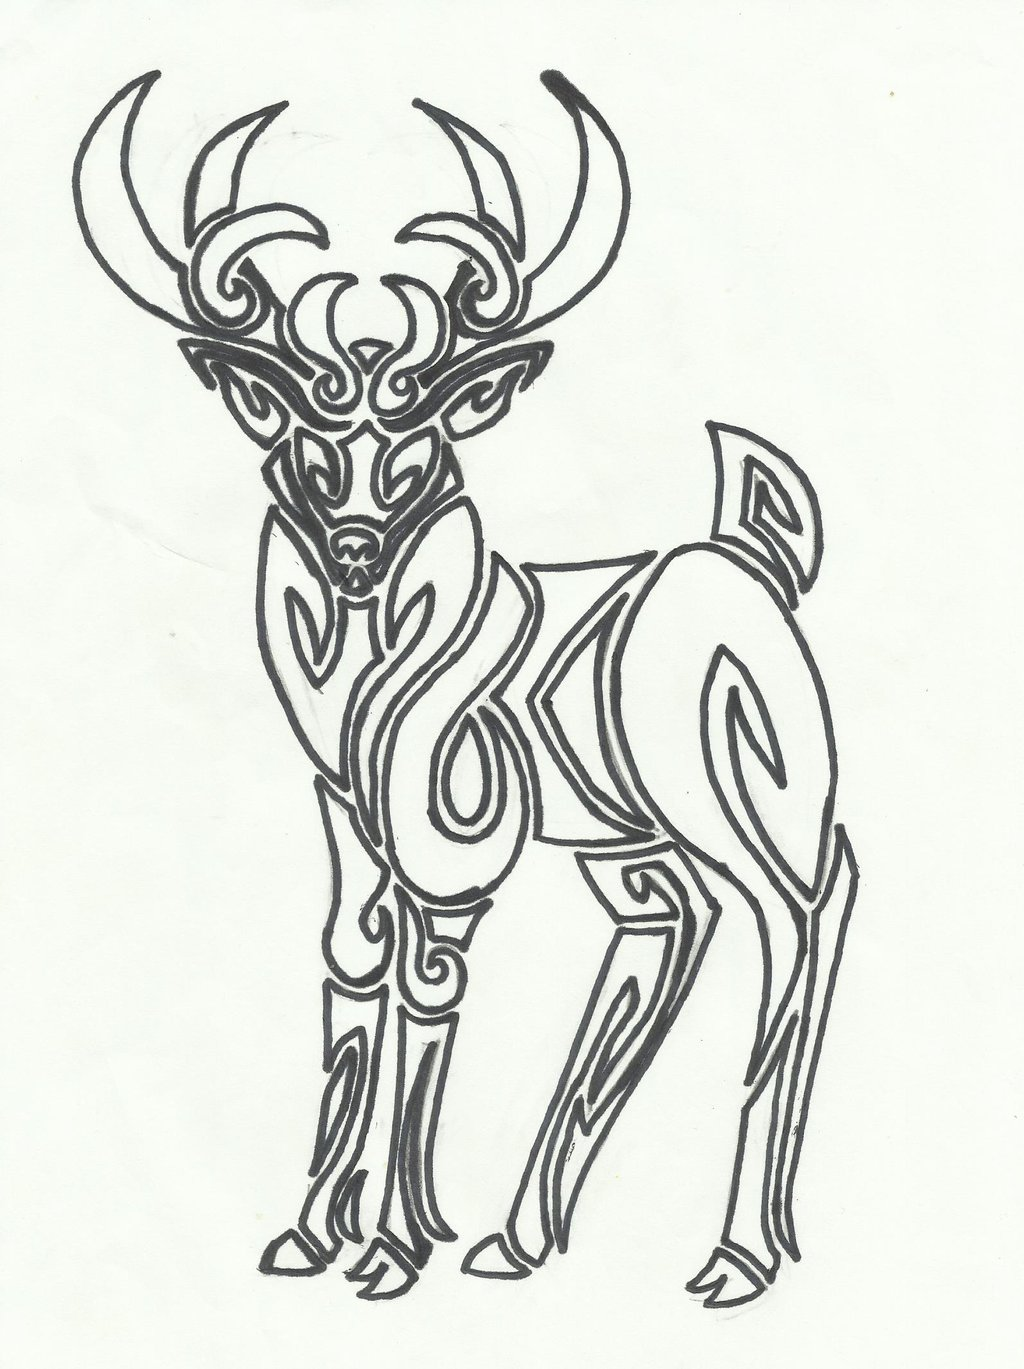 Drawn reindeer tribal Lass DeviantArt on Tribal by